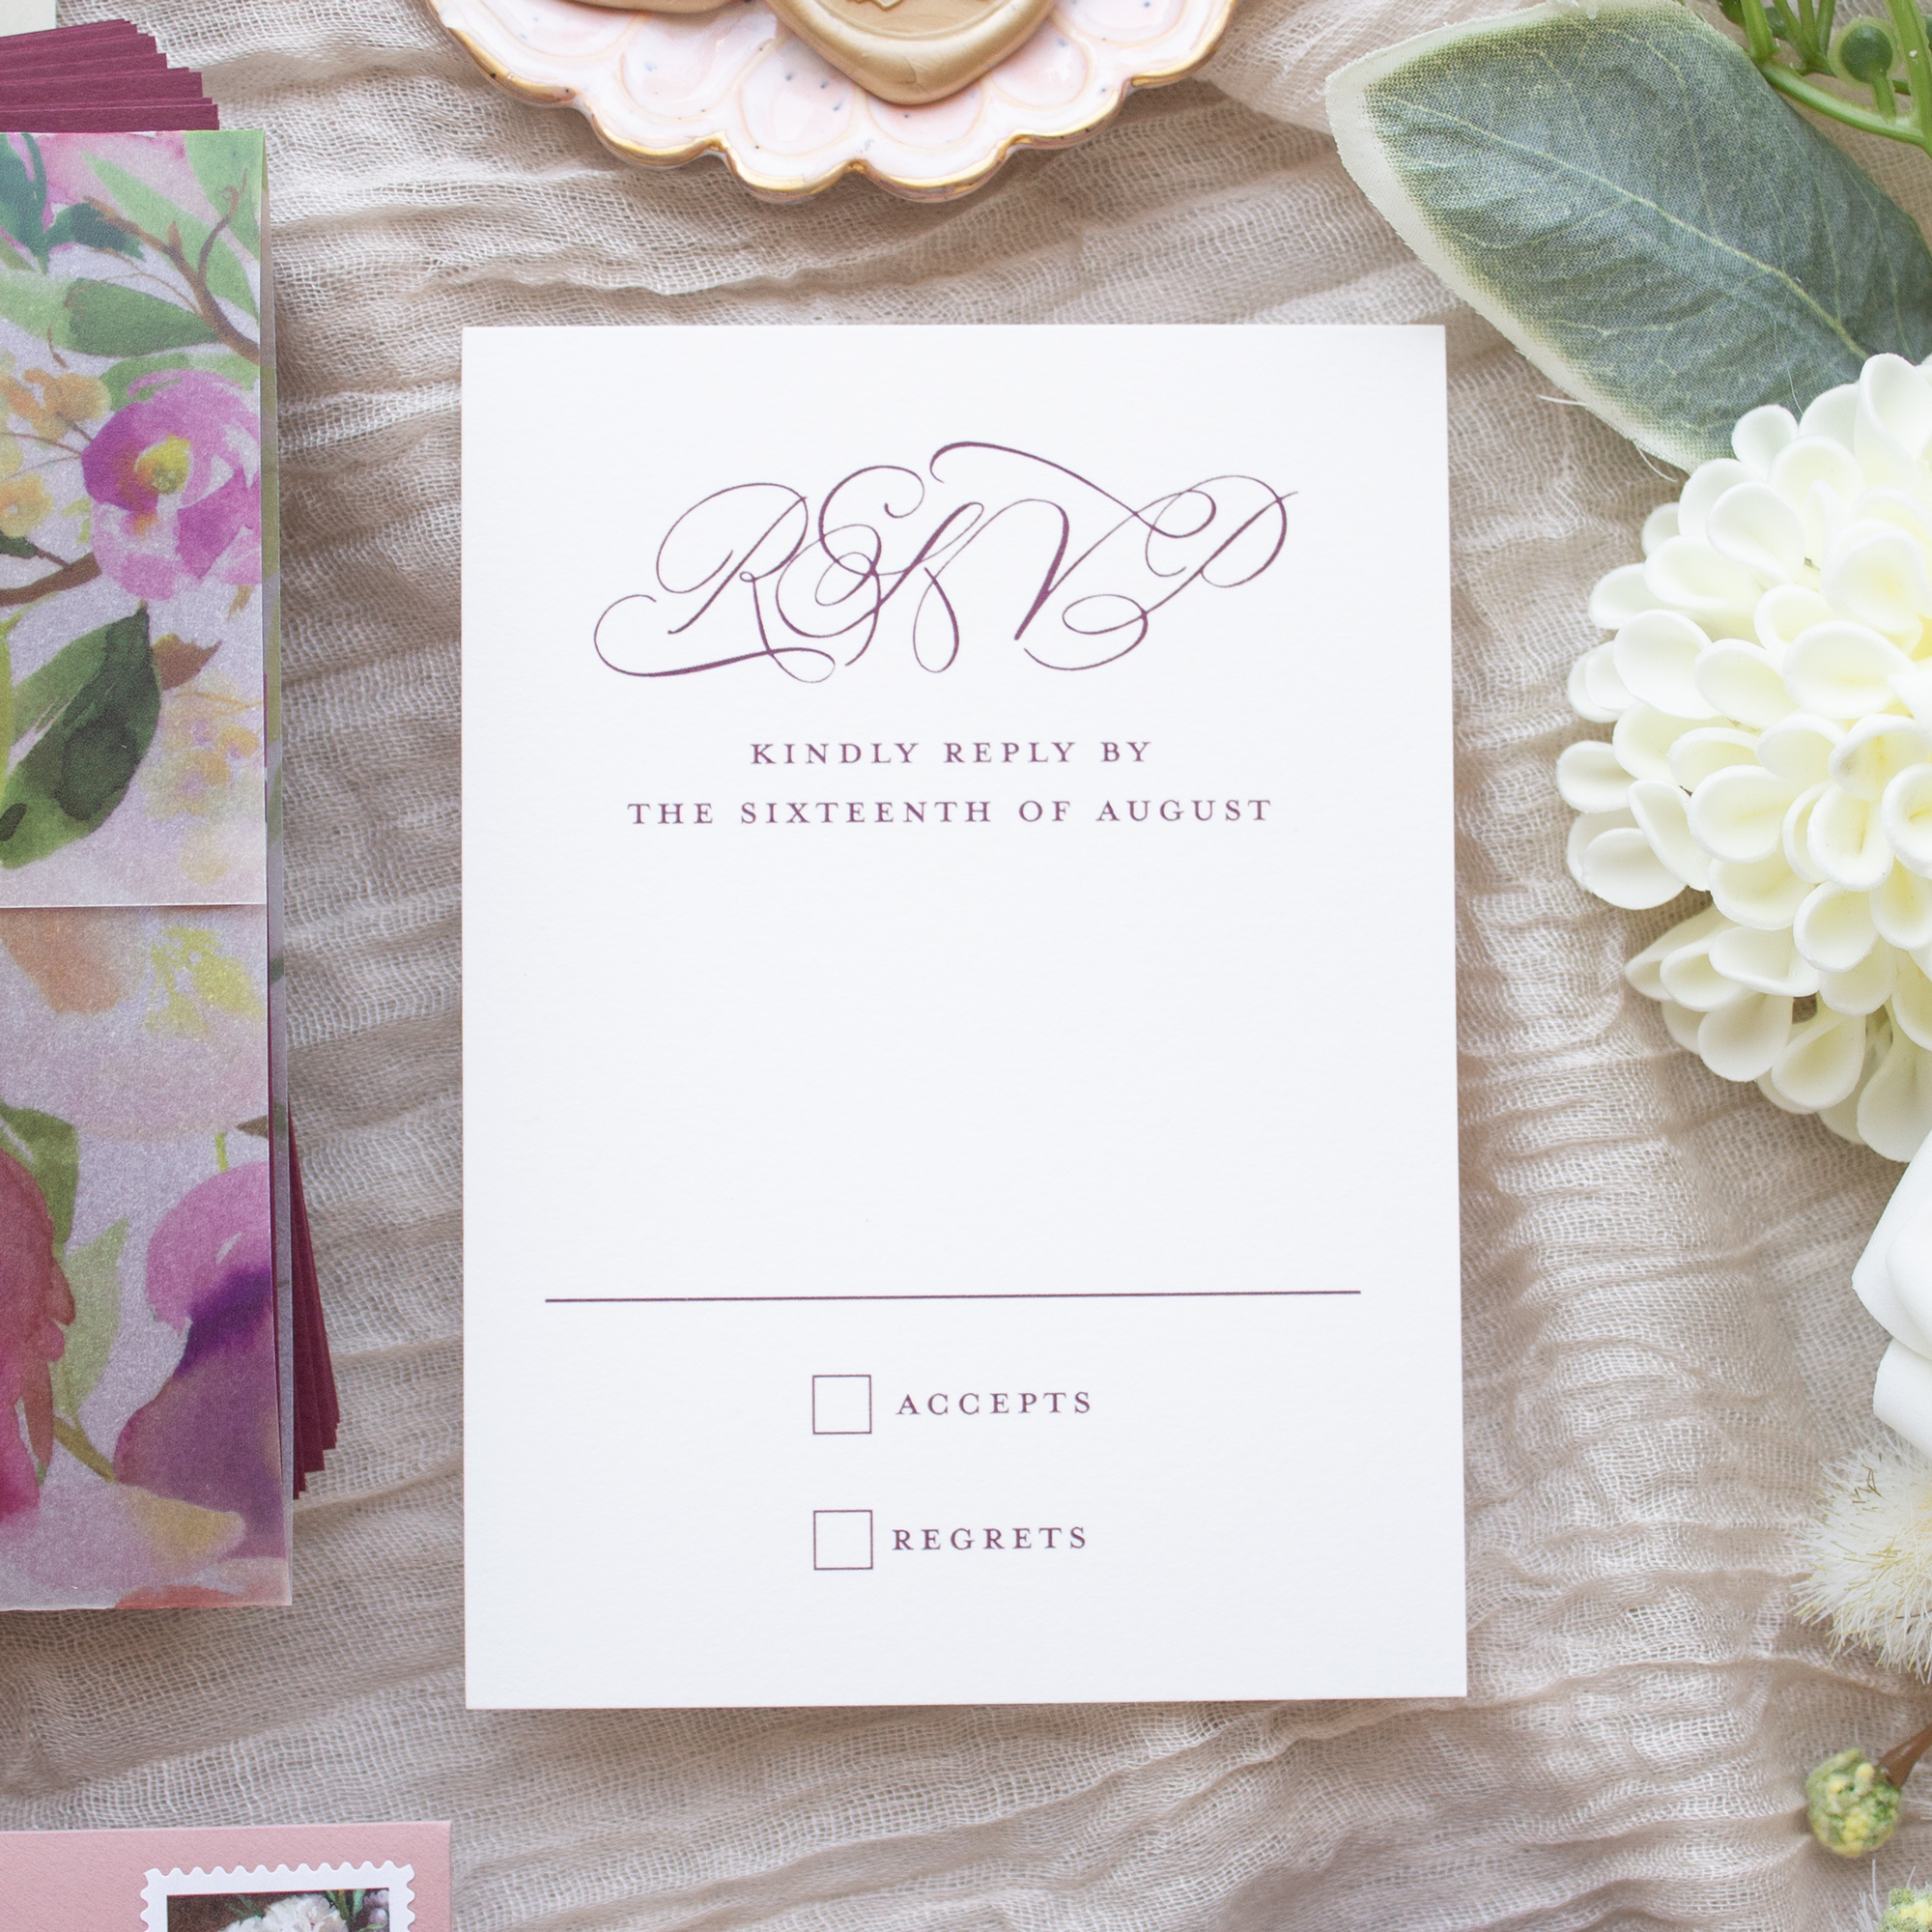 RSVP card calligraphy